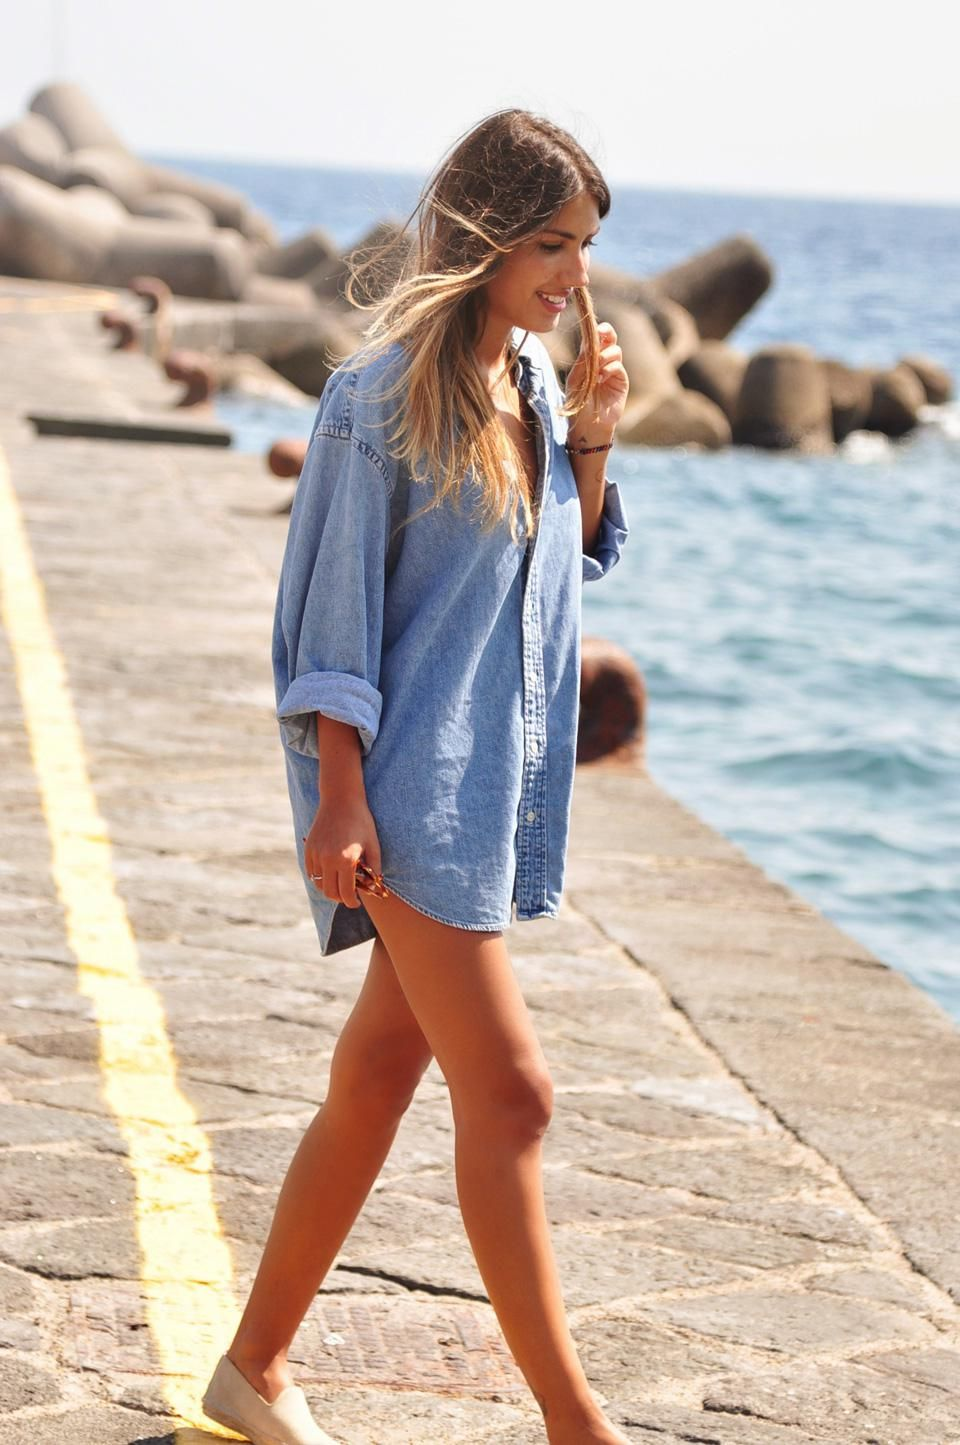 Beach Cover-Up Outfit Ideas | Oversized denim shirt, Style, Fashion